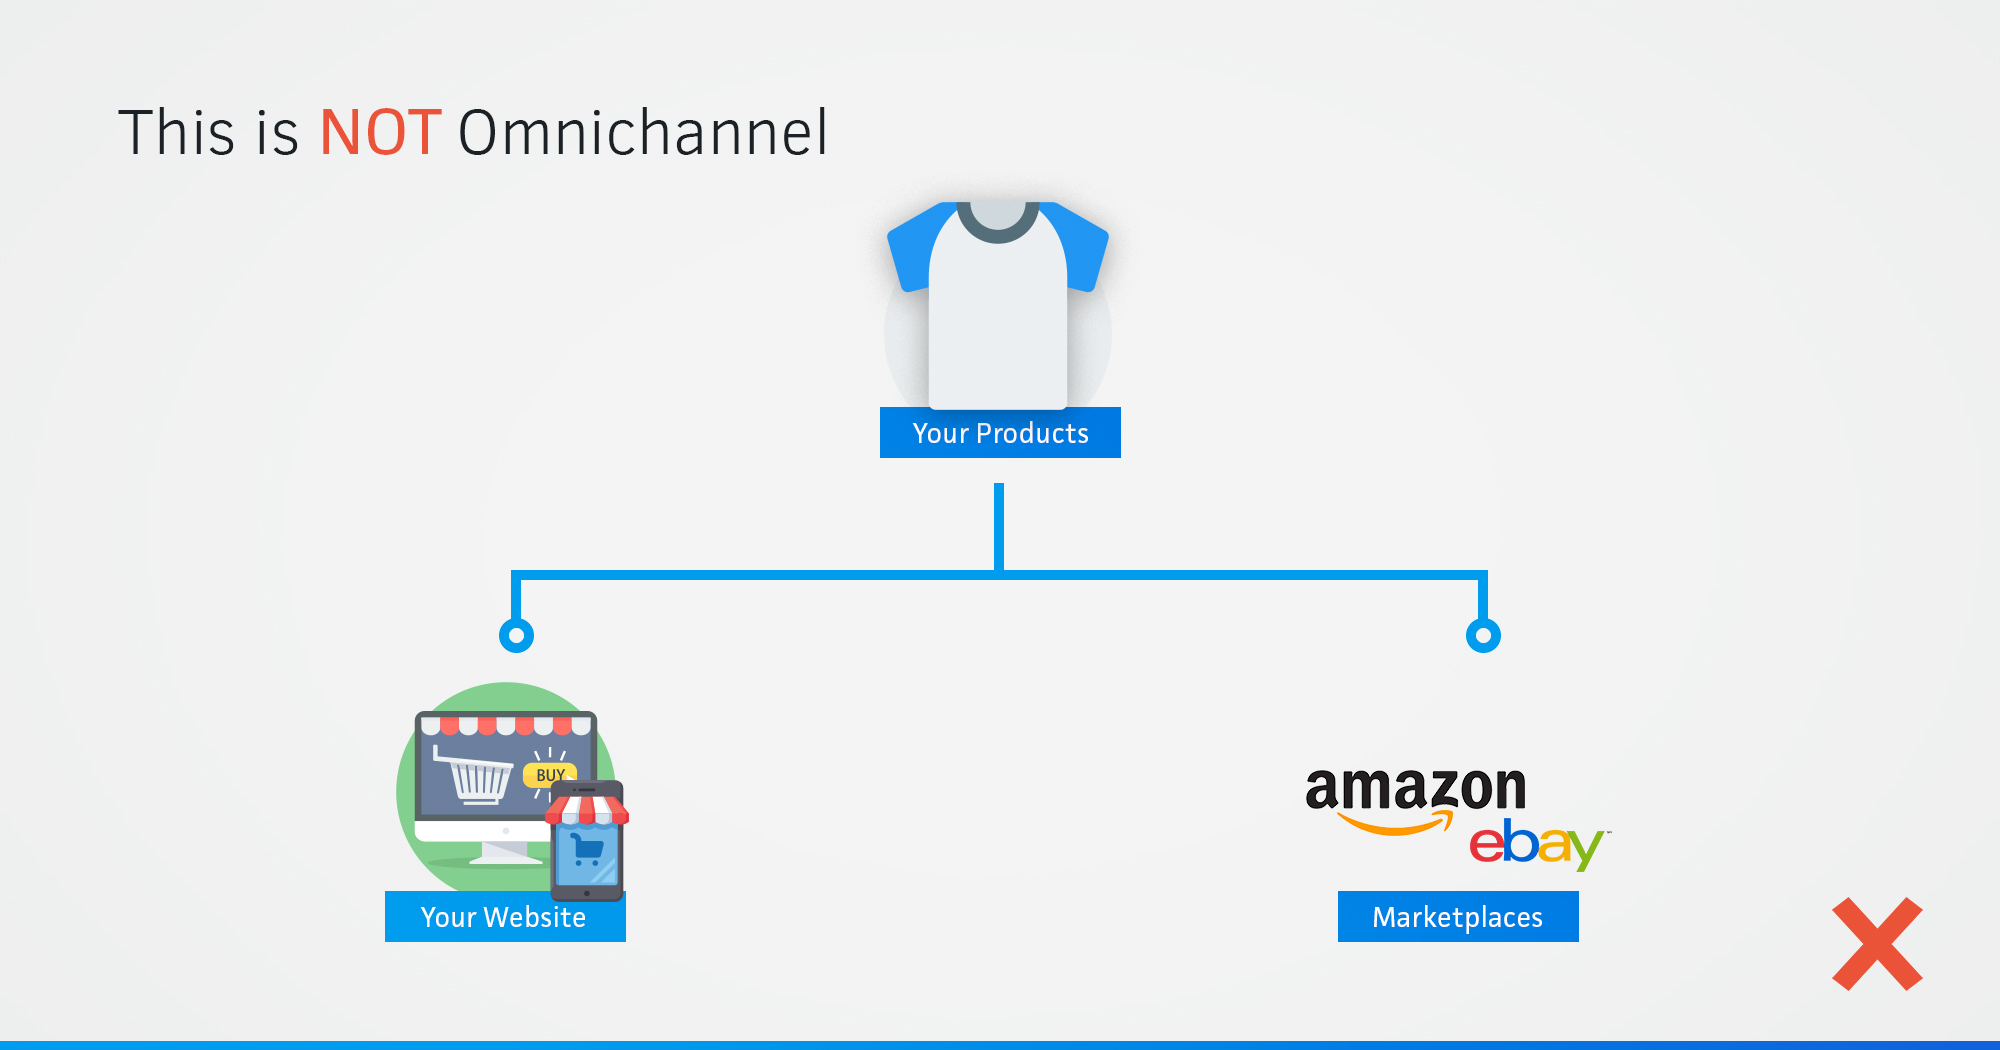 Multichannel vs Omnichannel diagram showing online channels and resources only